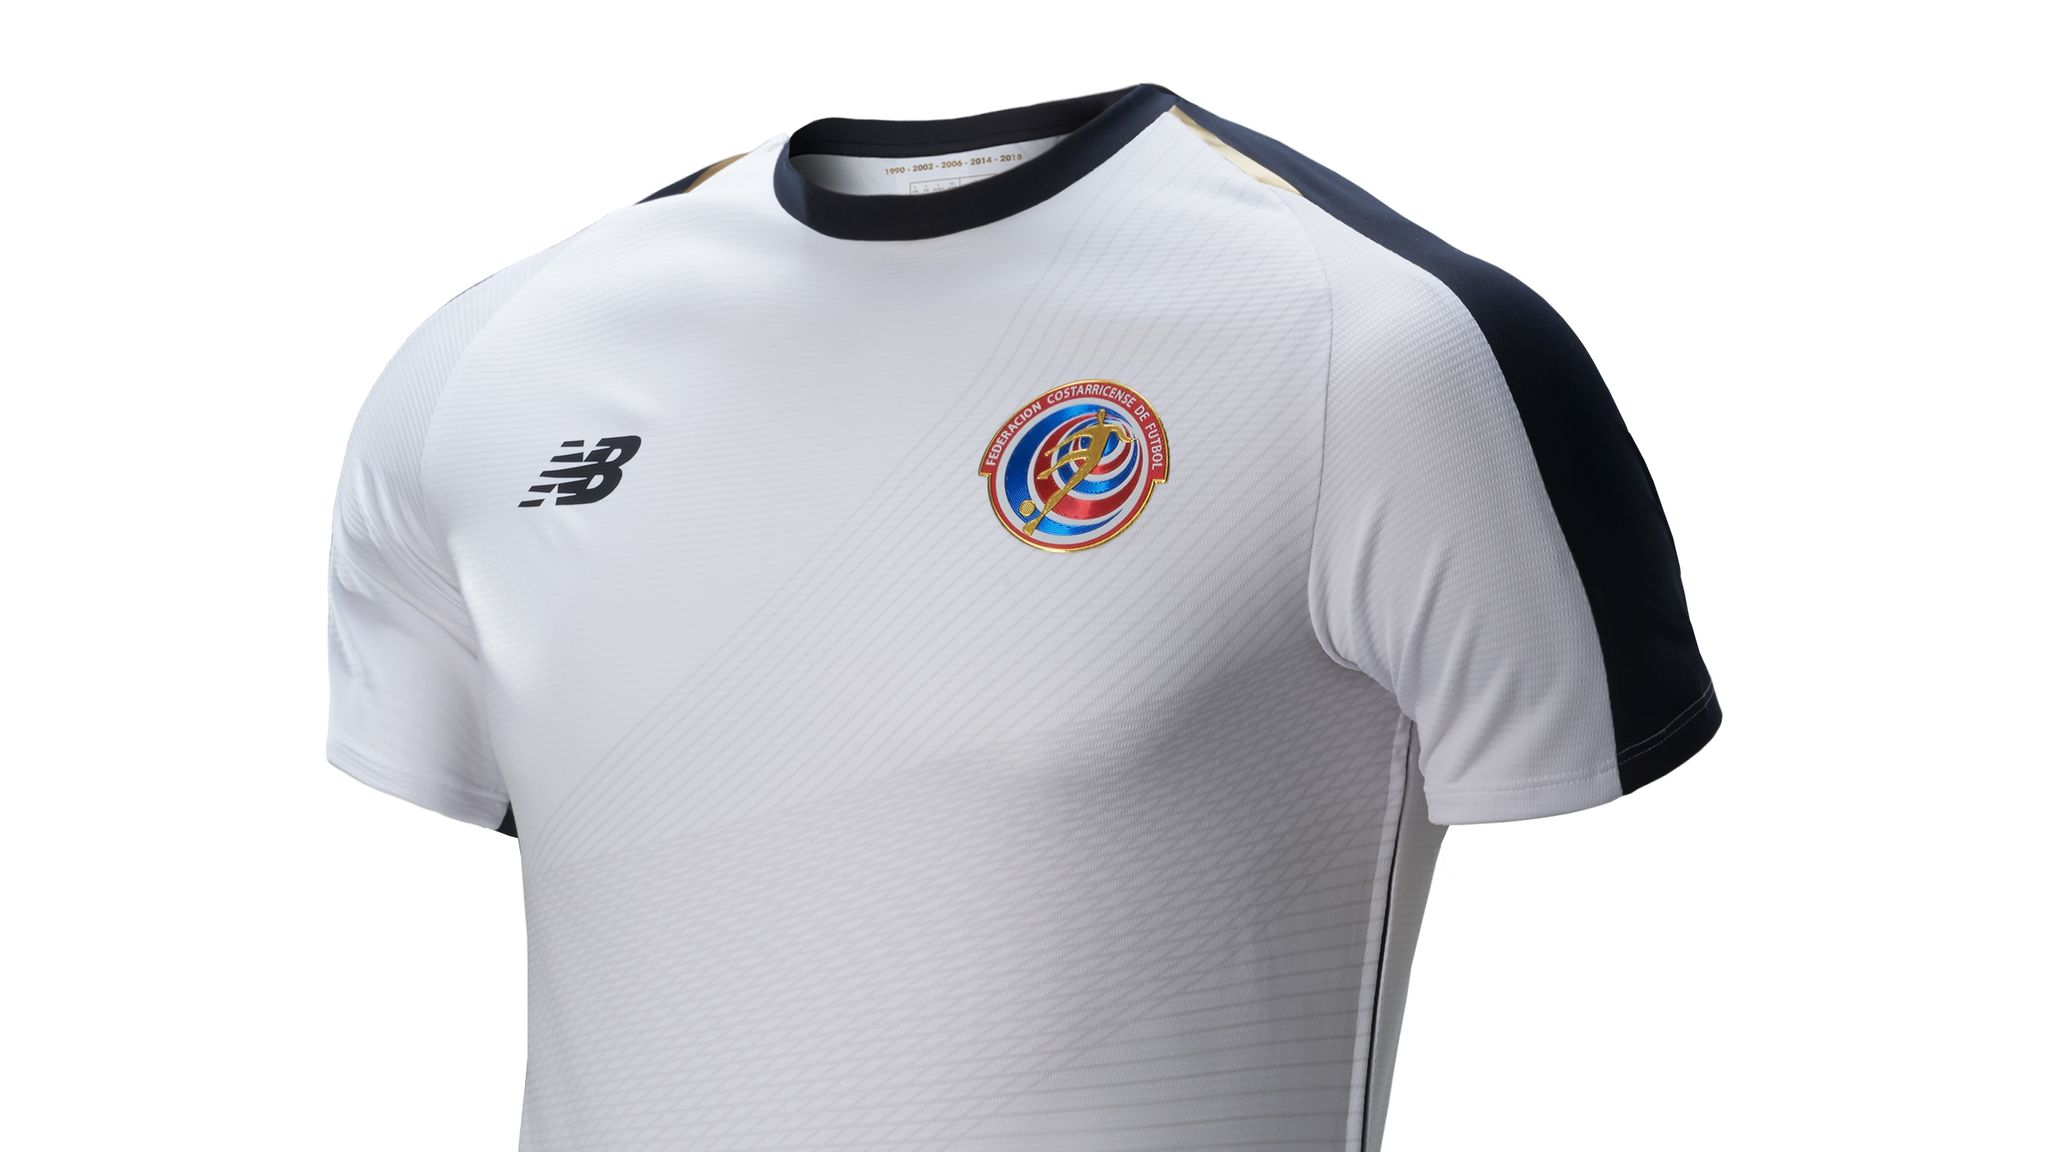 22c00f371d5 World Cup 2018 kits revealed: England, Brazil, Nigeria, Spain, Belgium,  Russia and more | Football News | Sky Sports